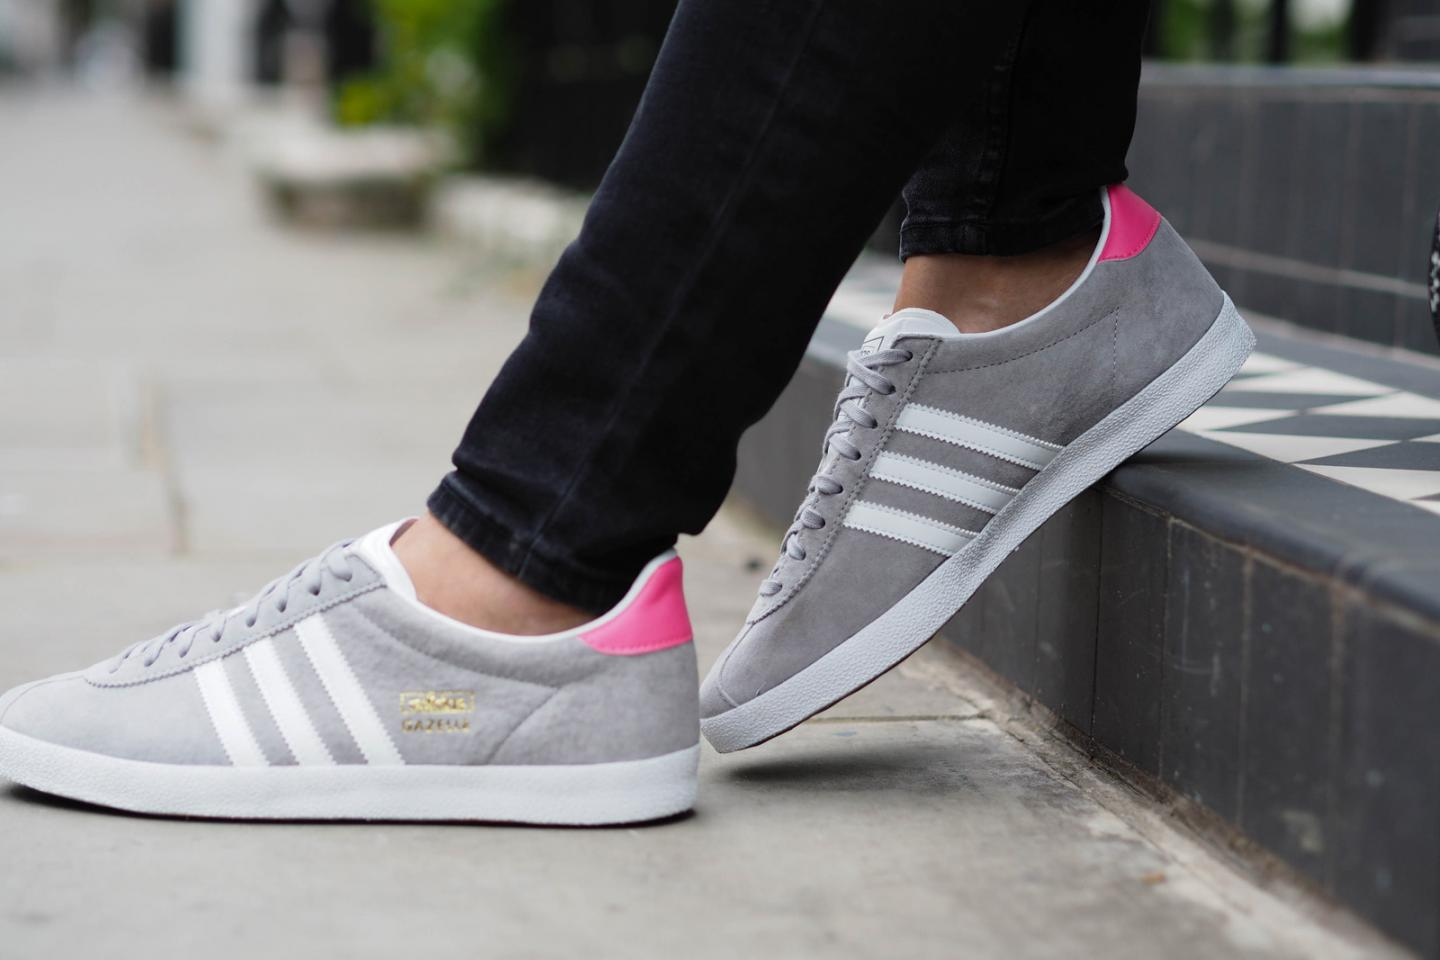 EJSTYLE wears Adidas grey suede Gazelle OG trainers